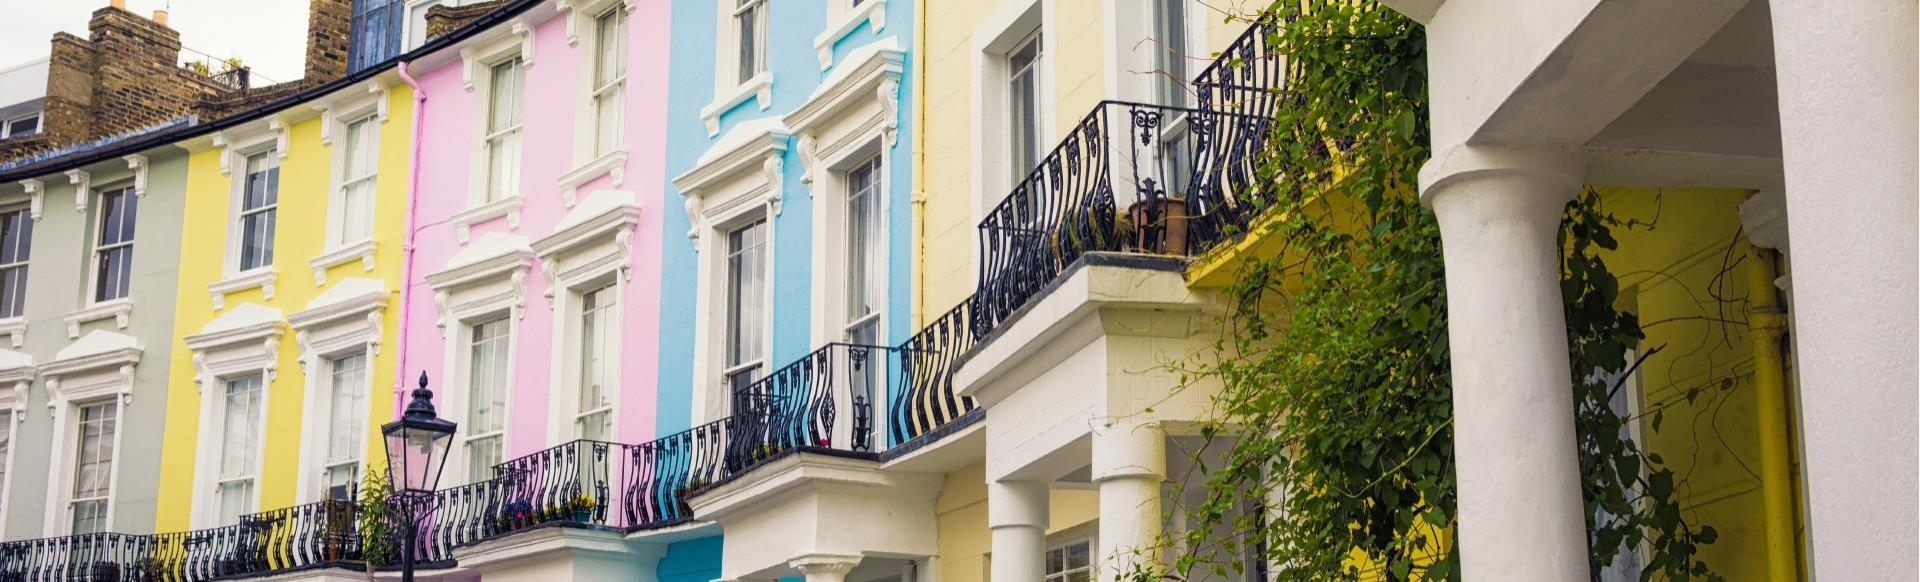 A row of colourful houses with columns at the entrance in Notting Hill.